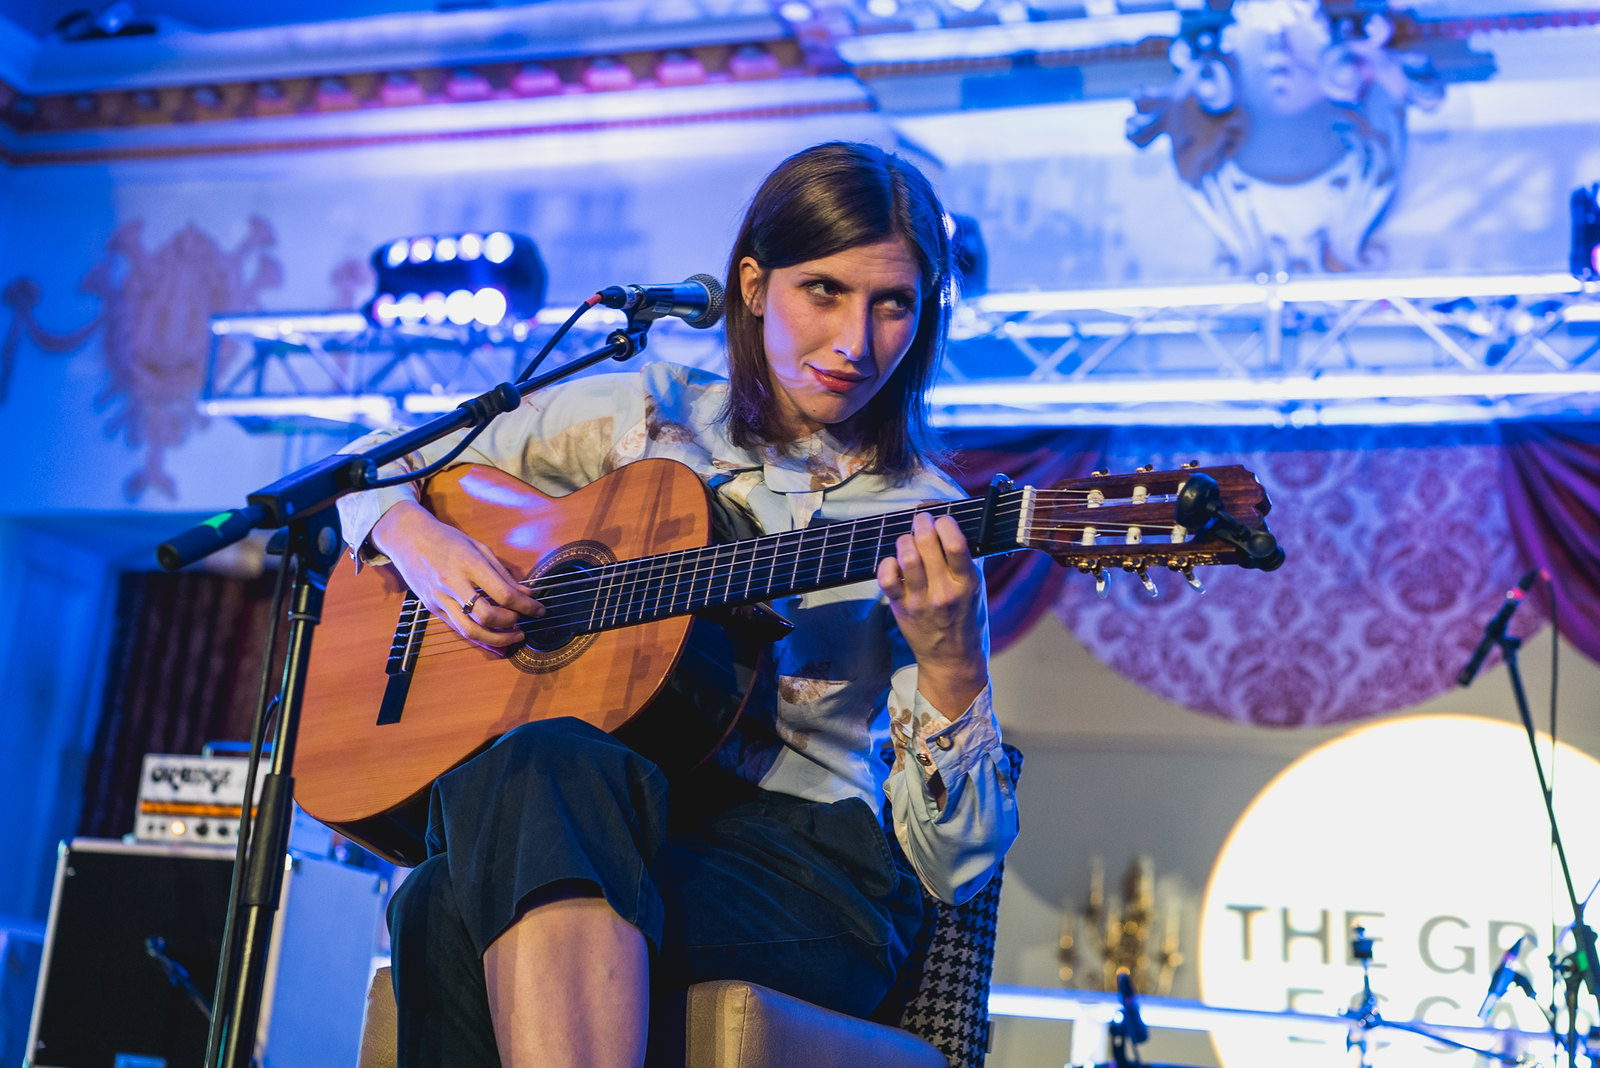 The Great Escape 2016: Aldous Harding